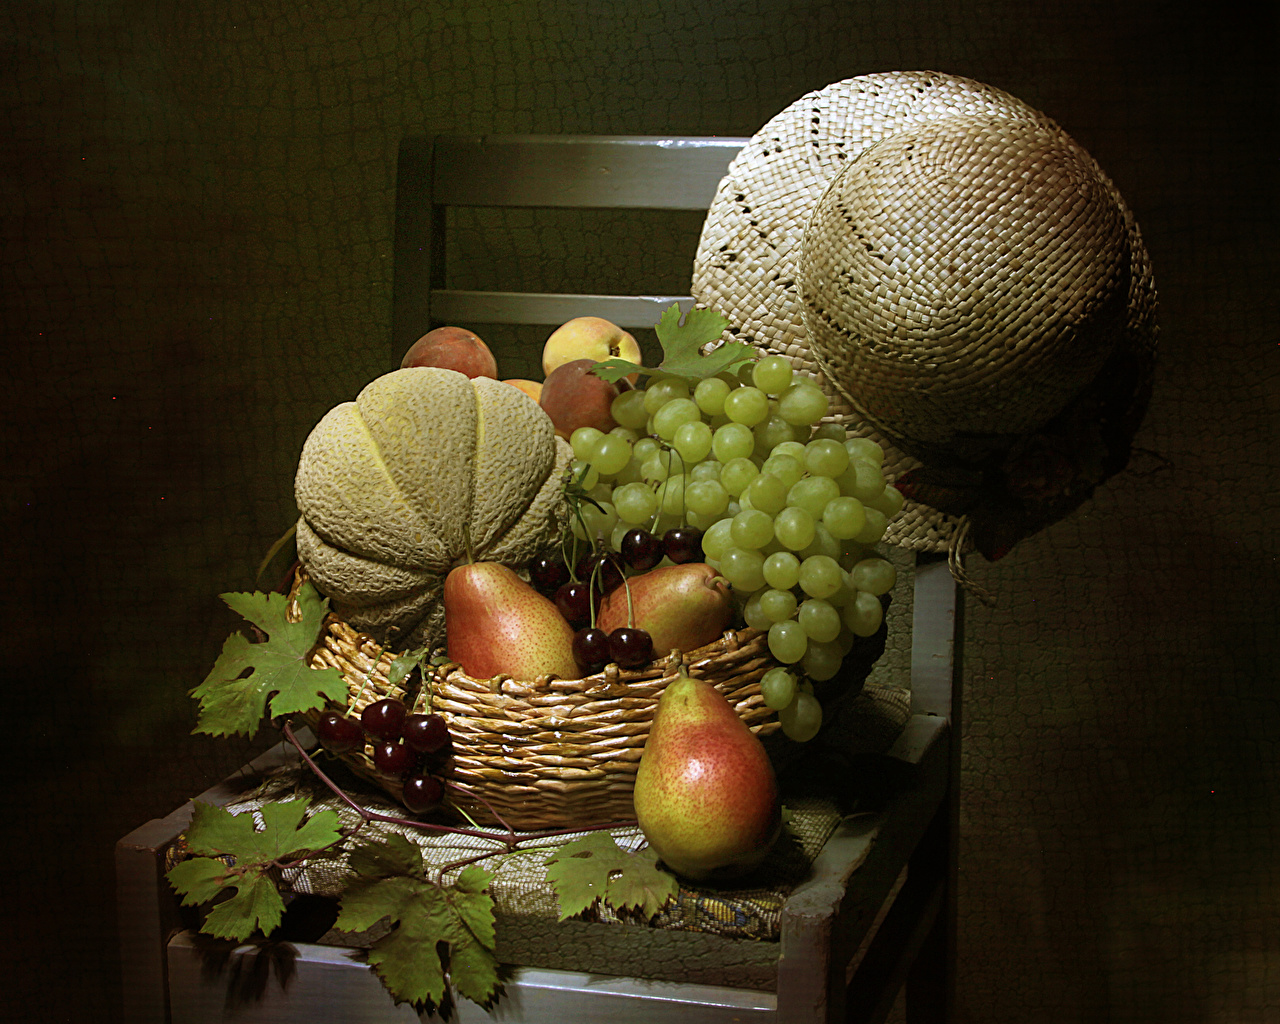 Image Leaf Hat Pears Cherry Melons Grapes Wicker basket Food Chairs Still-life Gray background Foliage